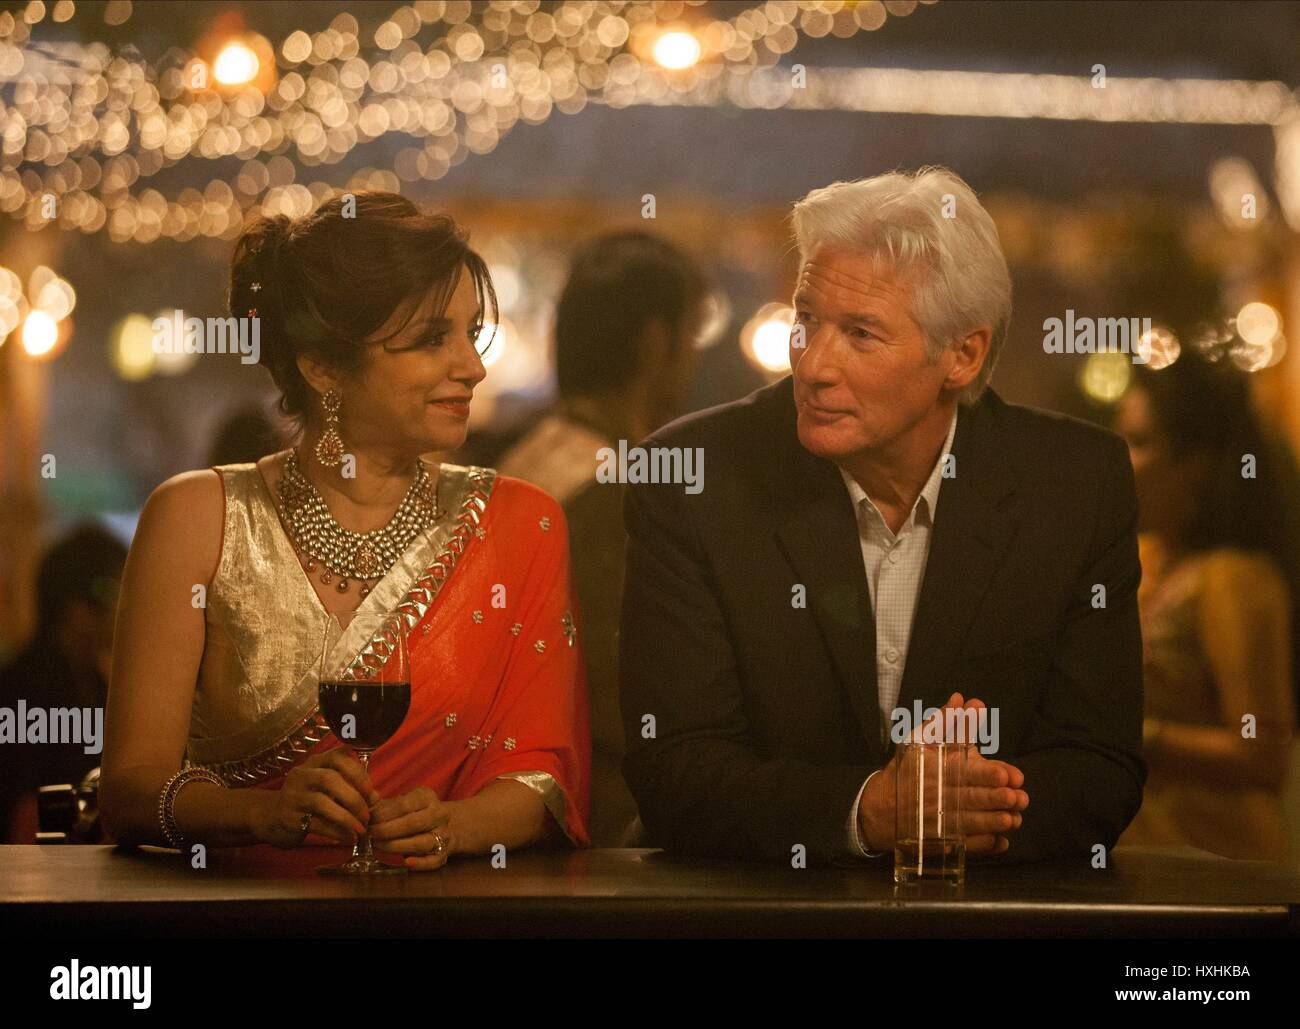 LILLETE DUBEY & RICHARD GERE THE SECOND BEST EXOTIC MARIGOLD HOTEL (2015) - Stock Image